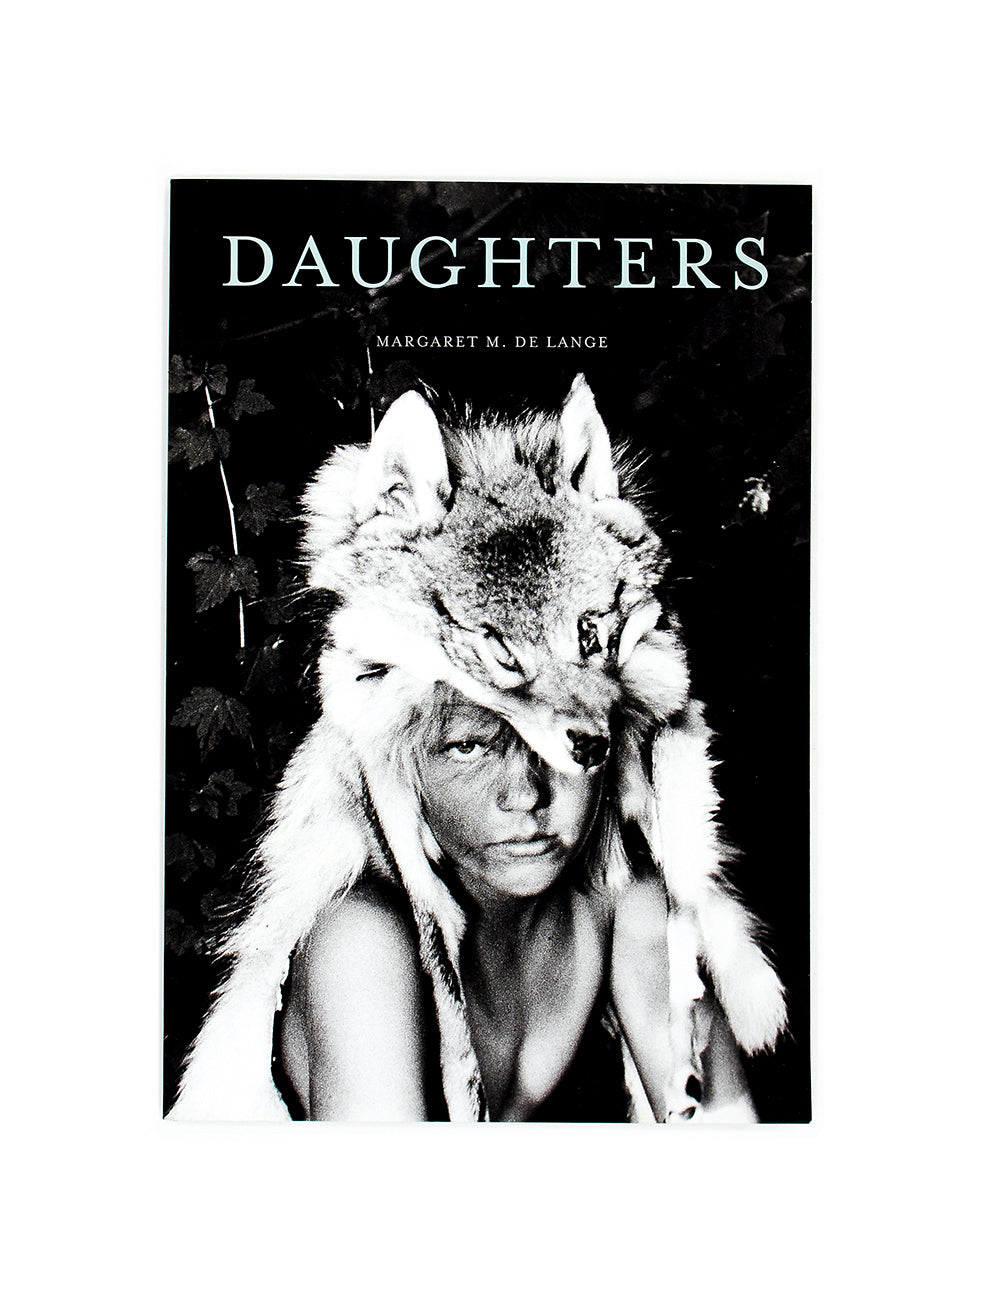 DAUGHTERS by Margaret M. de Lange